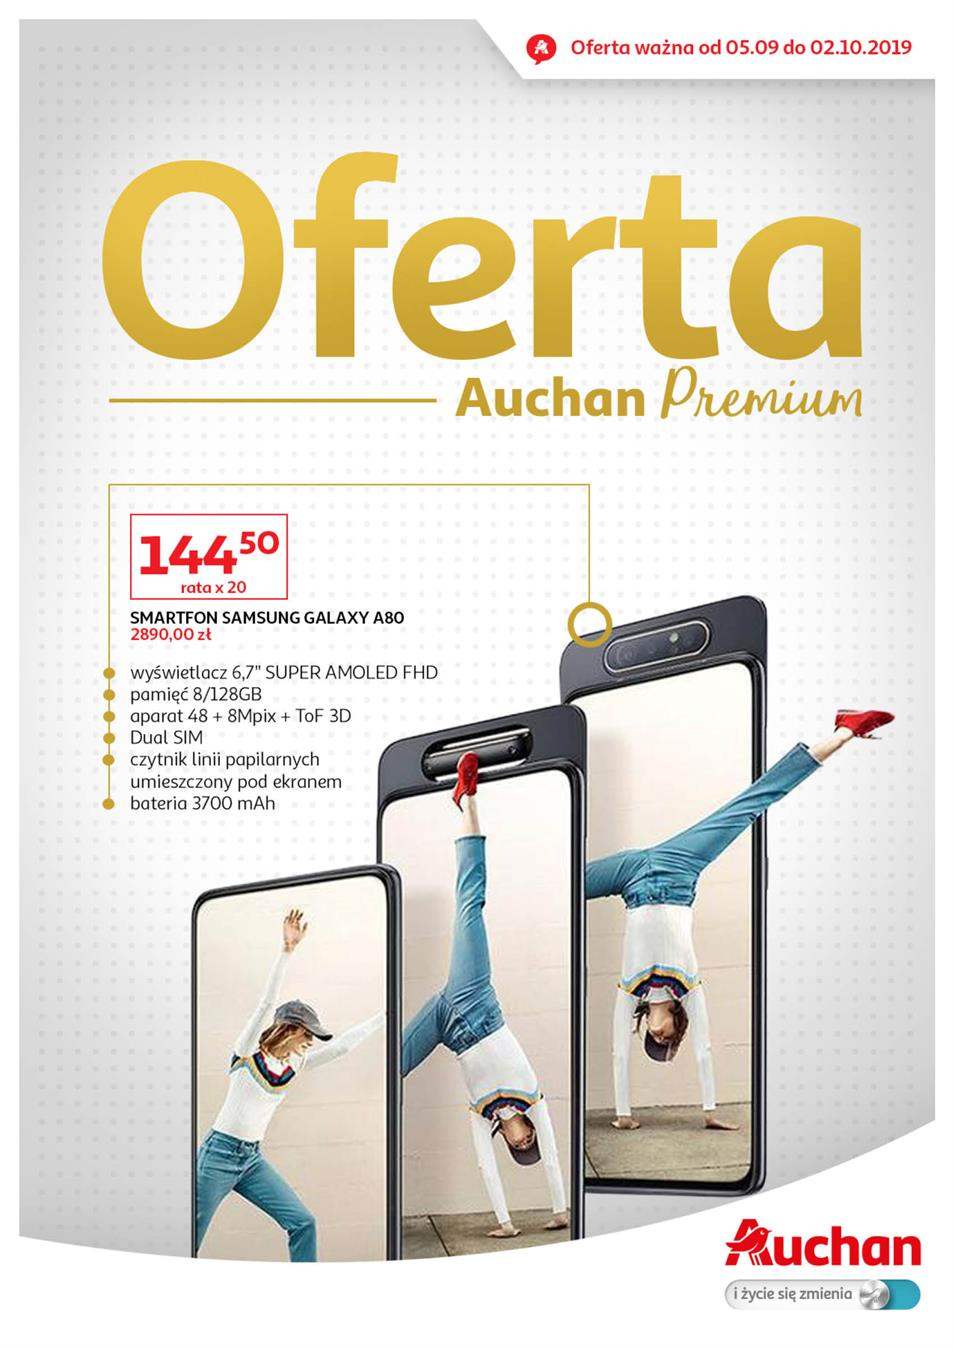 Gazetka Auchan Polska Sp. z o.o. nr 1 od 2019-09-05 do 2019-10-02